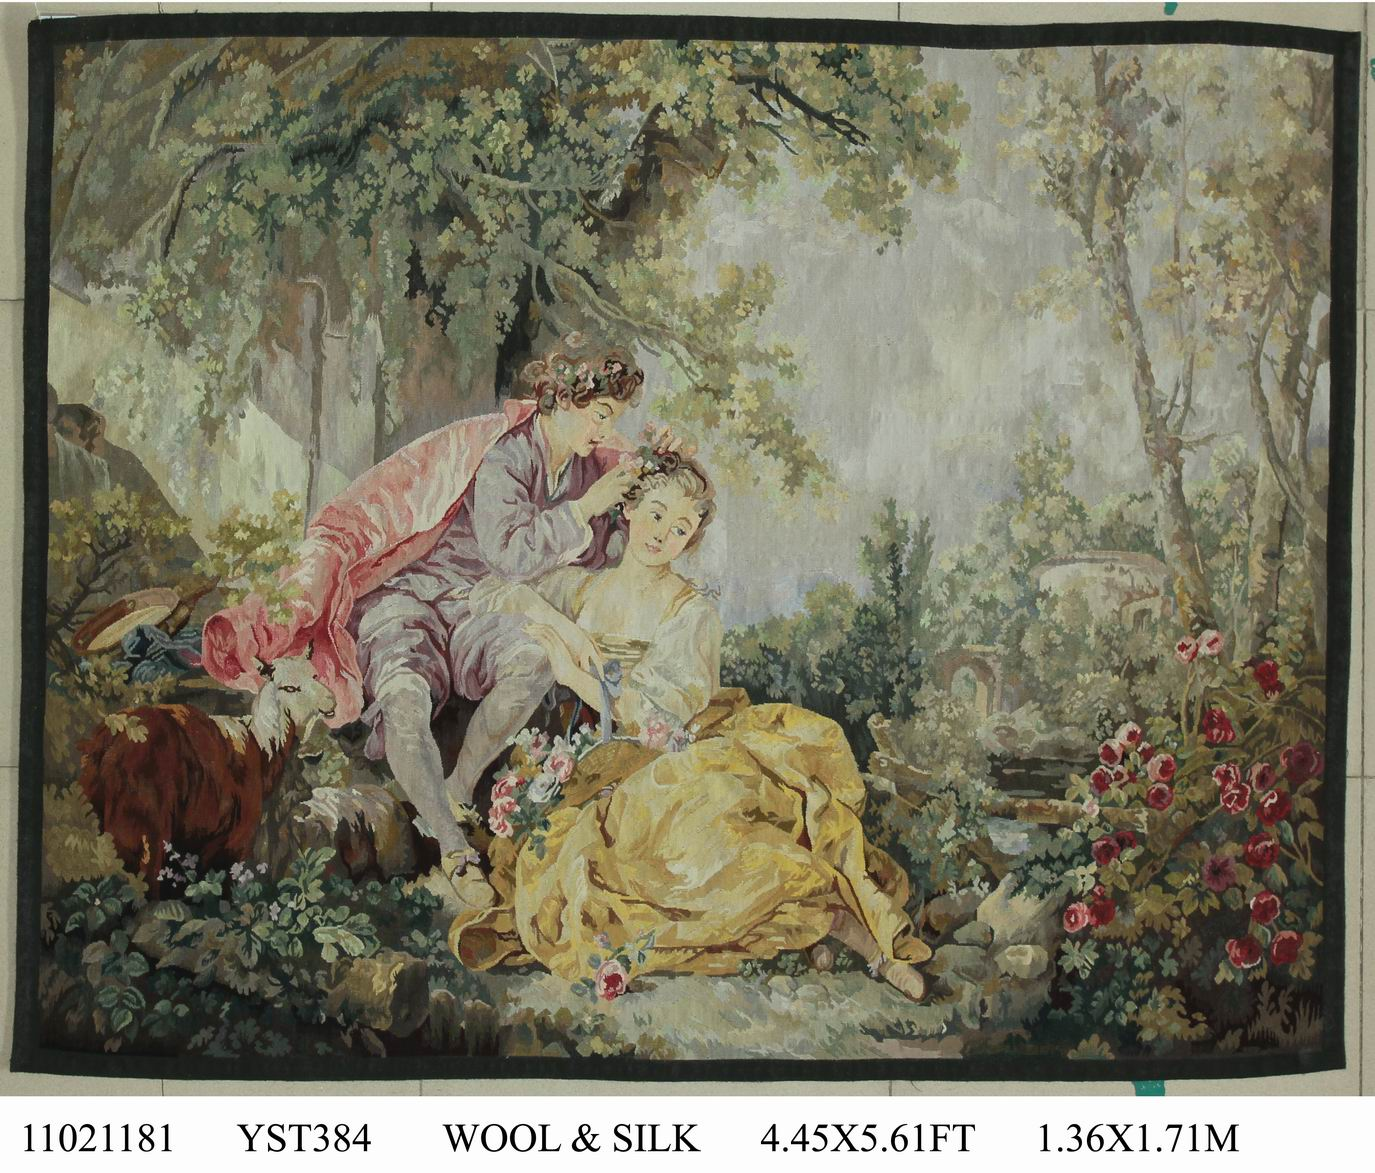 tapestry decor Pure handmade wool palace French Aubusson Gobelins Weave Tapestry wide (122CM) 11021181 4.45x5.61gc88tapyg4